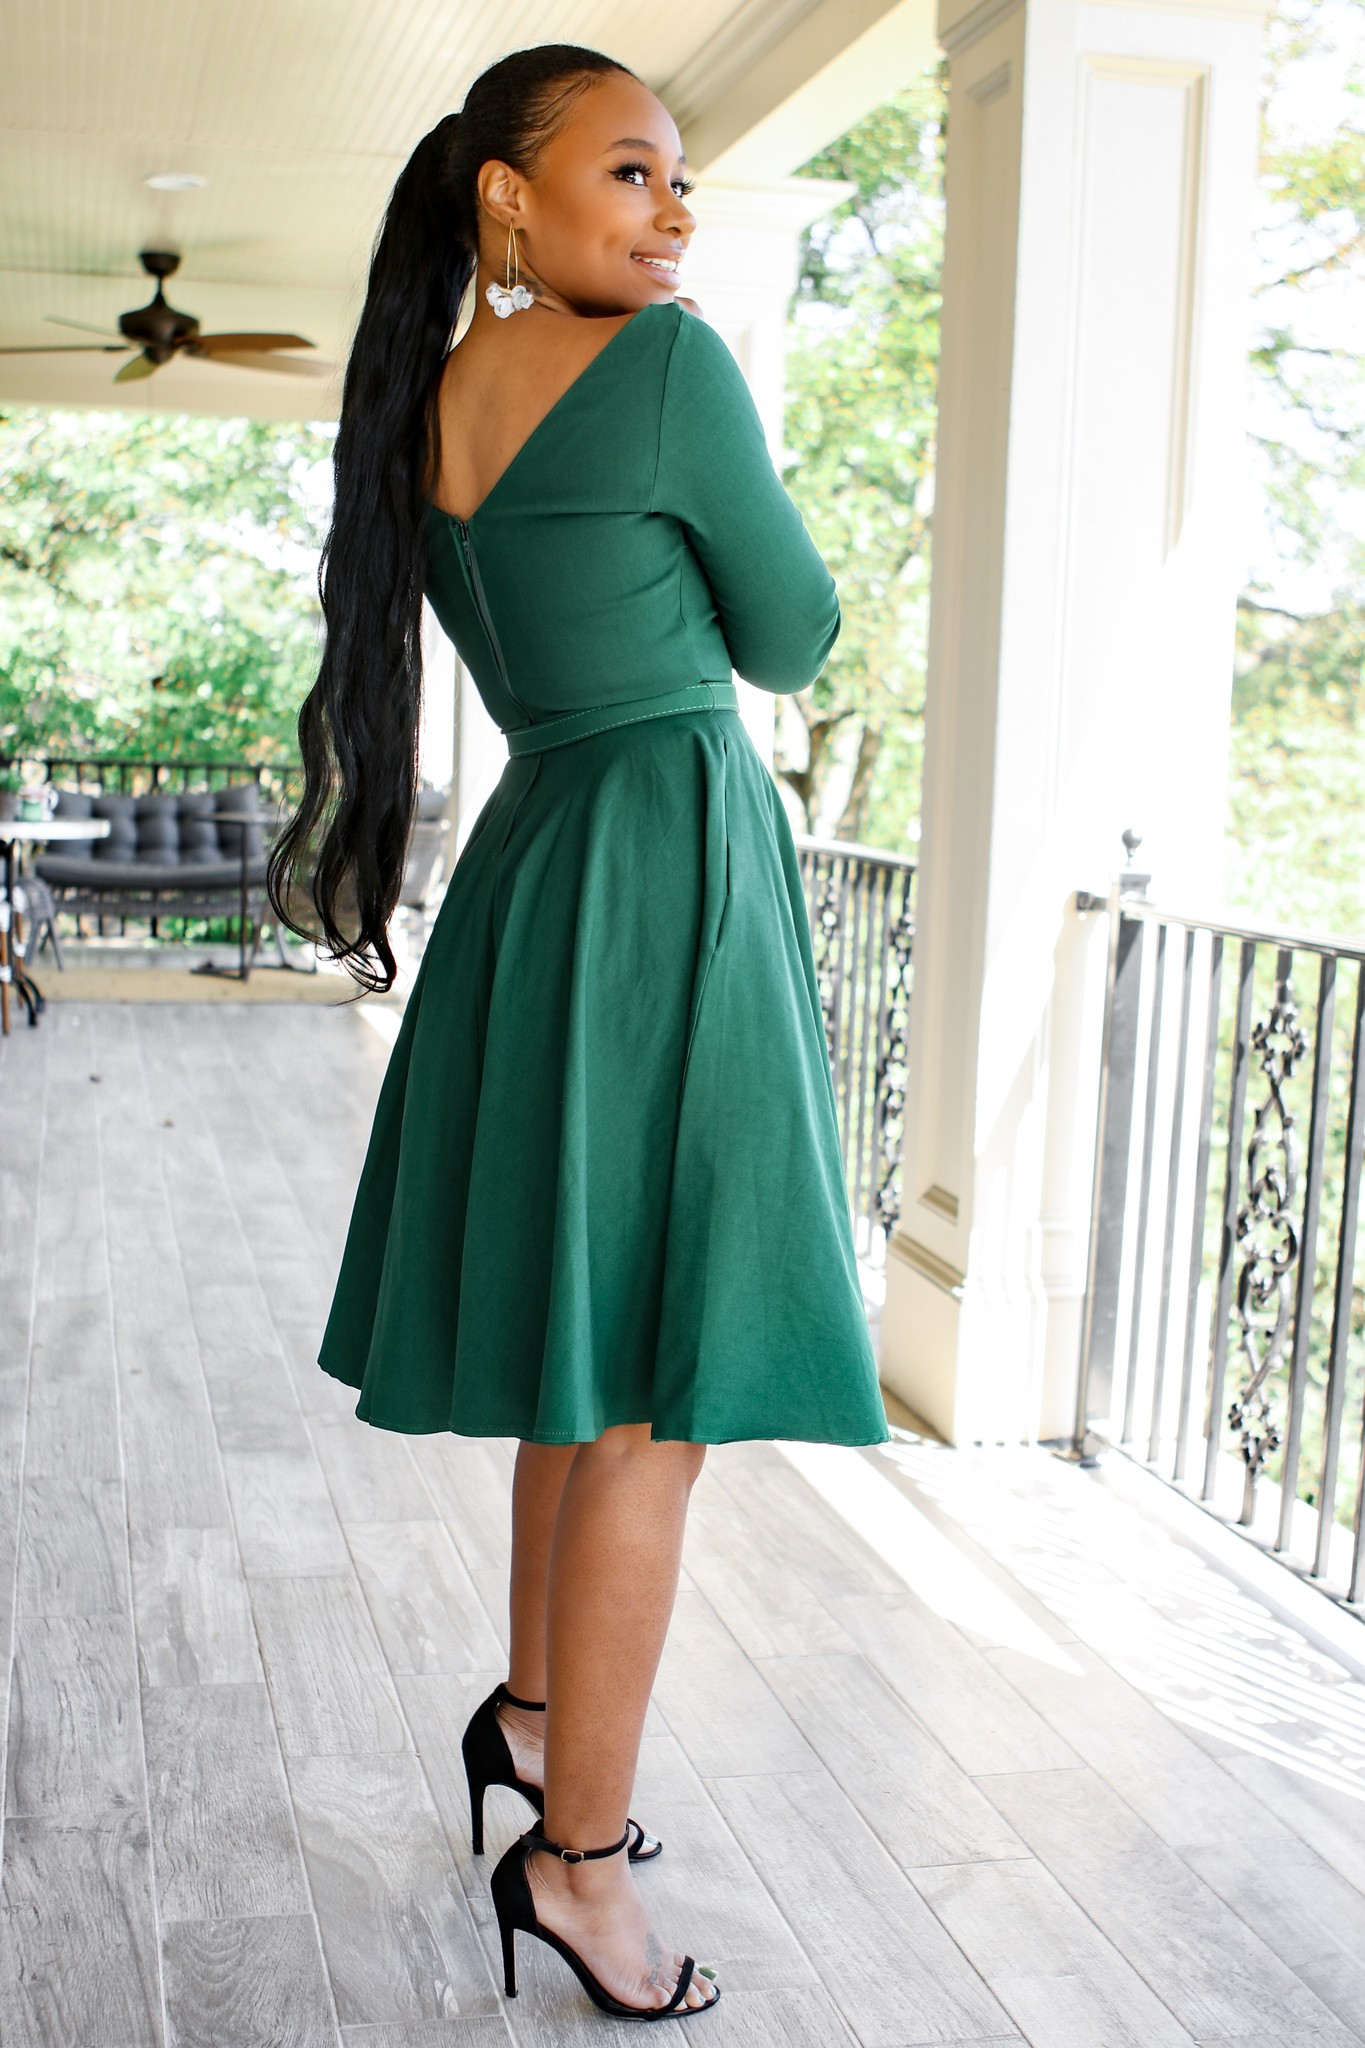 Unique Vintage 1950s Style Emerald Green Stretch Sleeved Devon Swing Dress